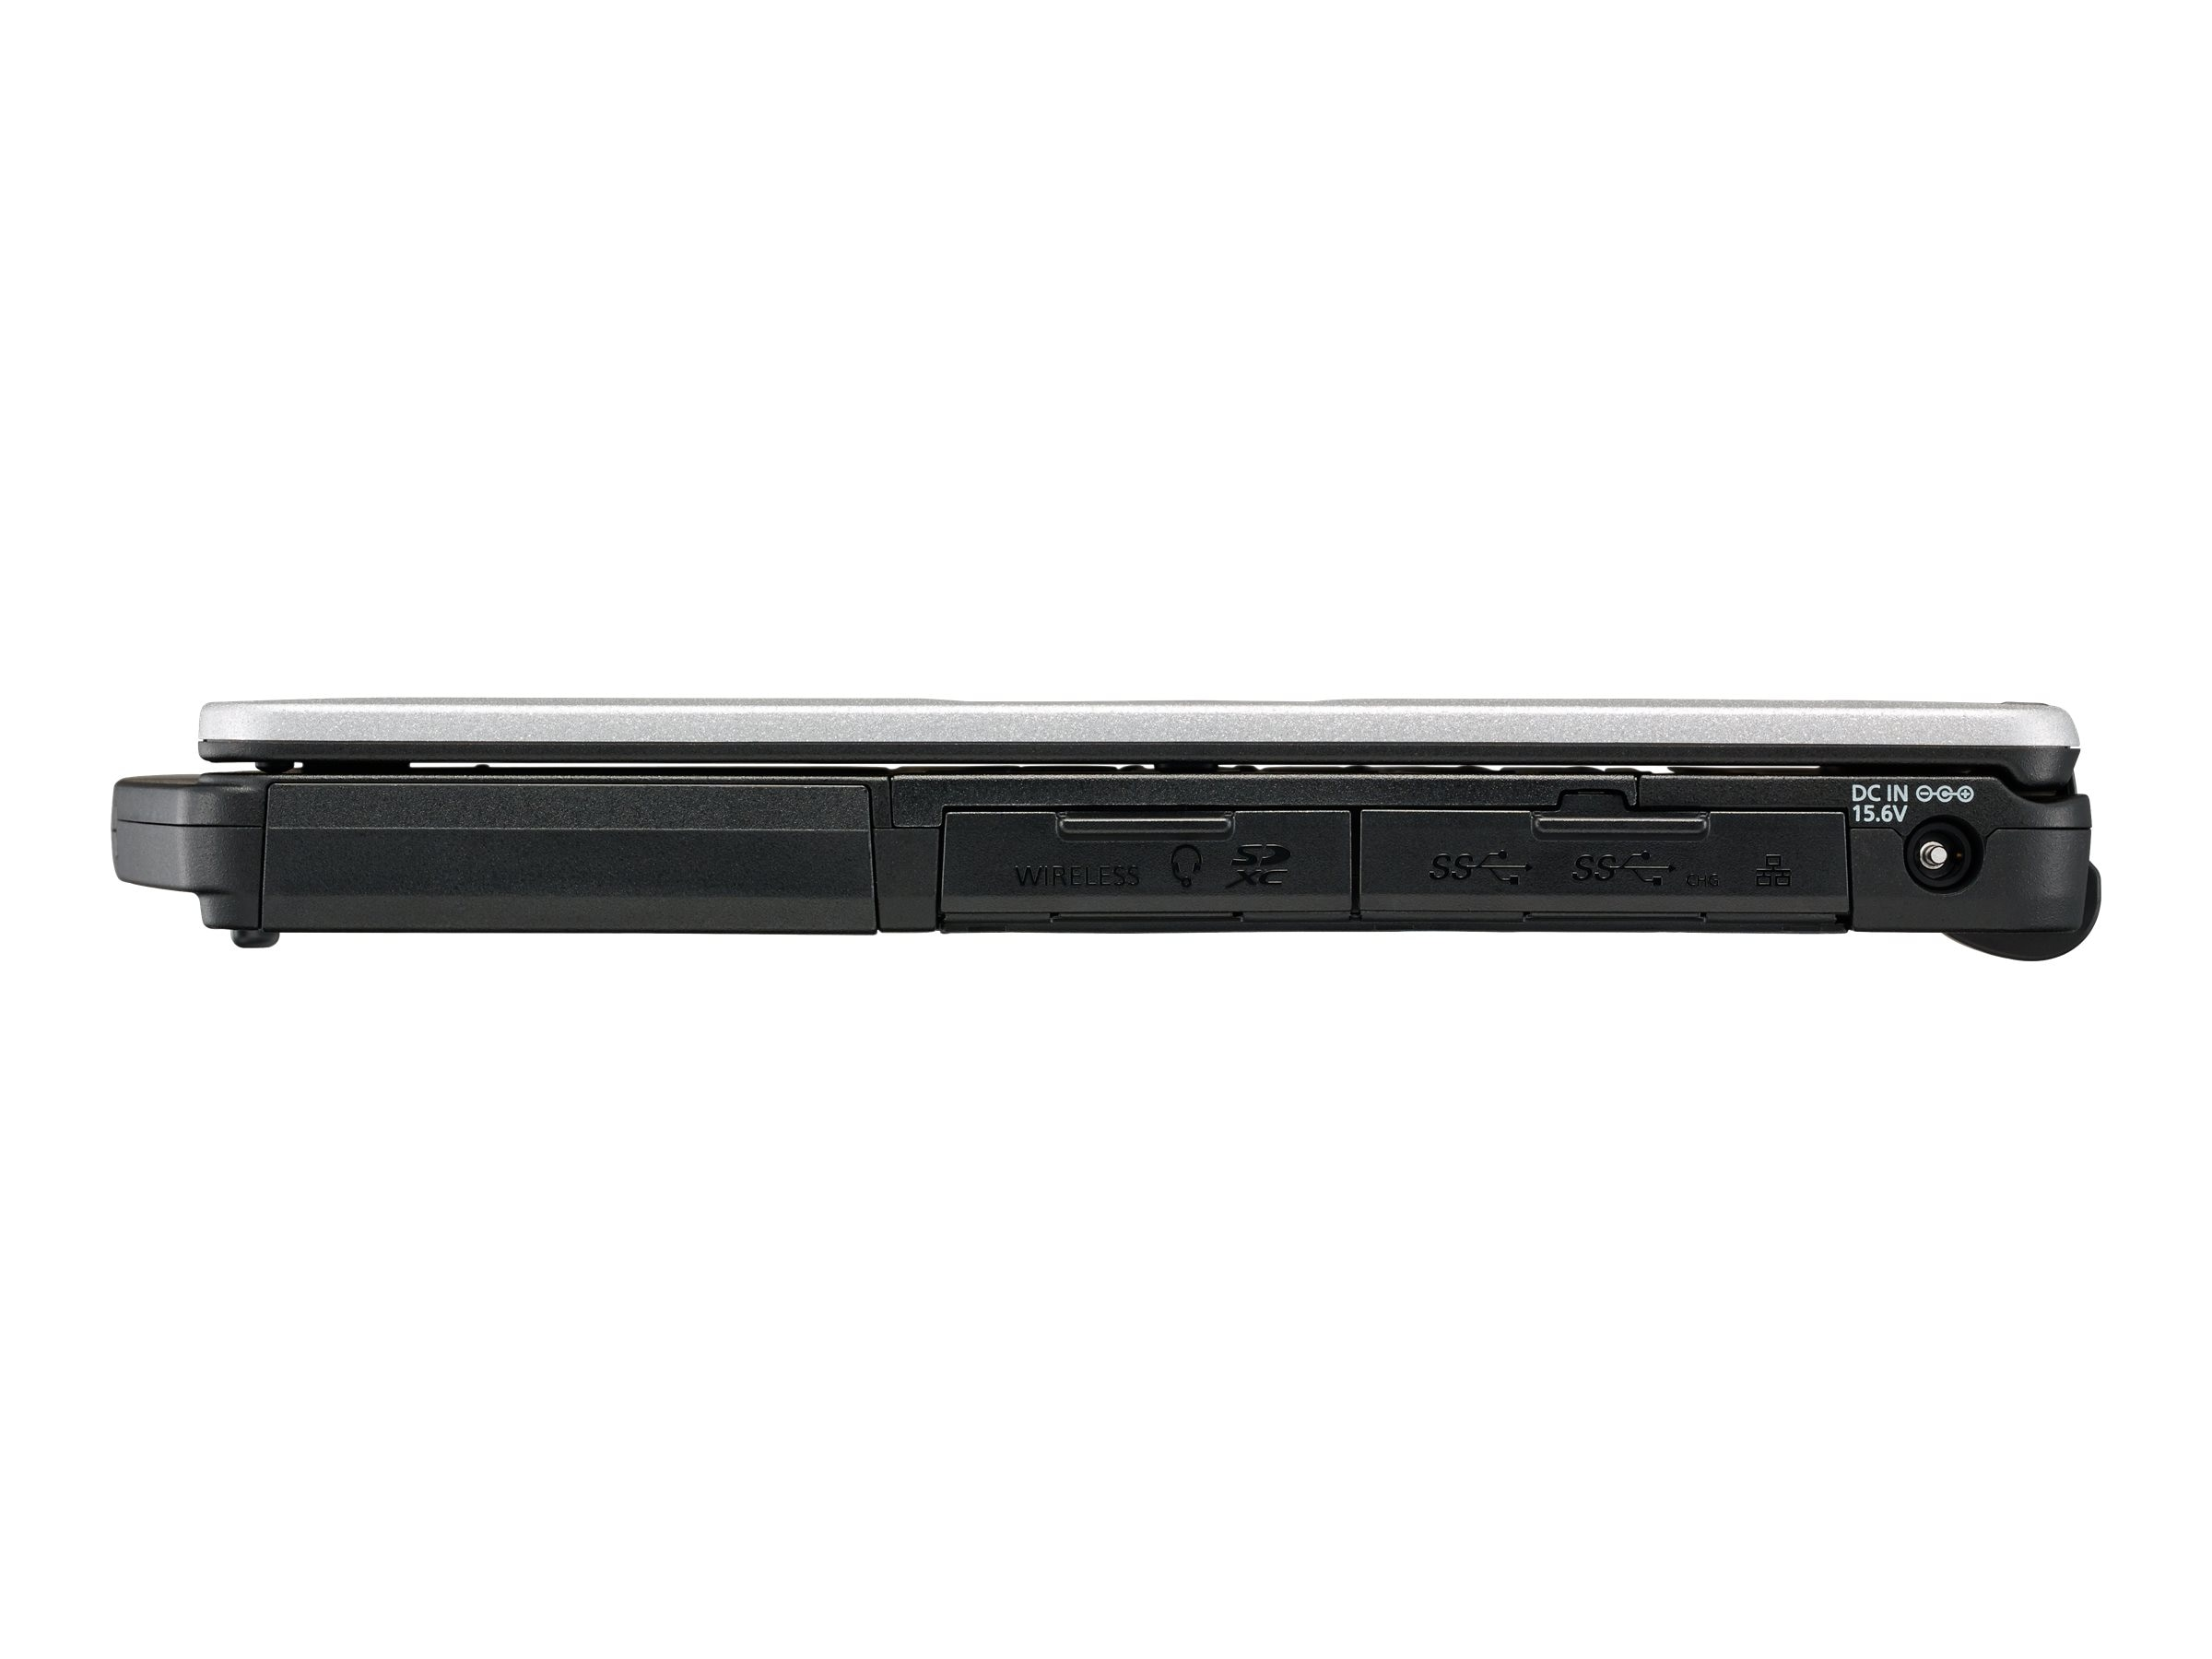 Panasonic Toughbook 54 2.4GHz Core i5 14in display, CF-54F5518KM